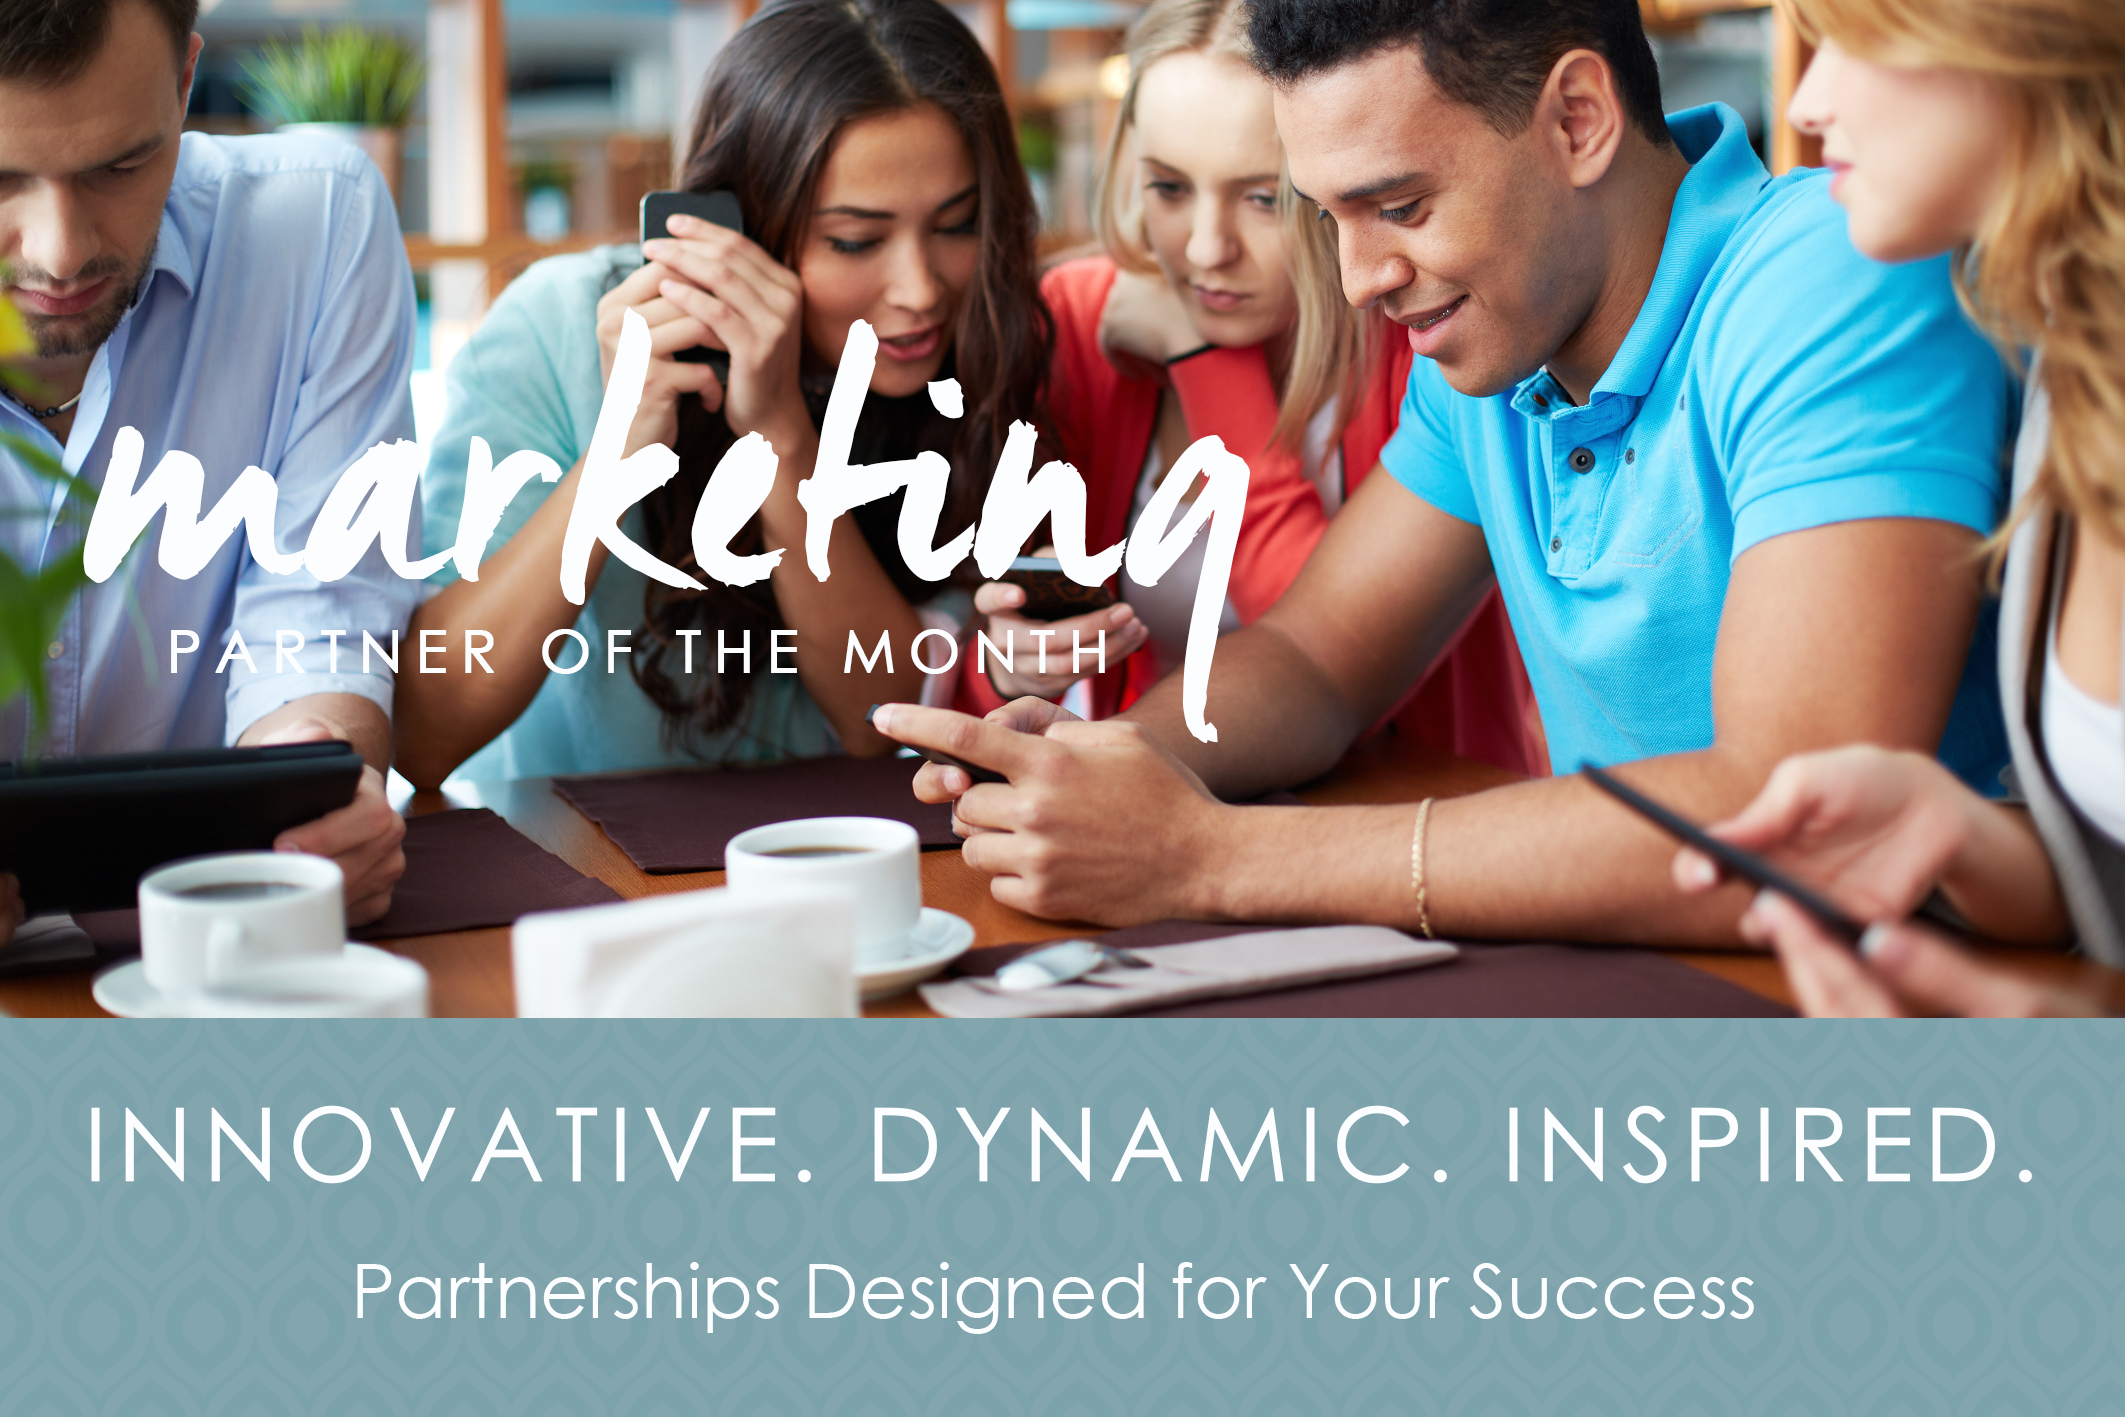 Congratulations to Modern Message, LPC's Marketing Partner of the Month